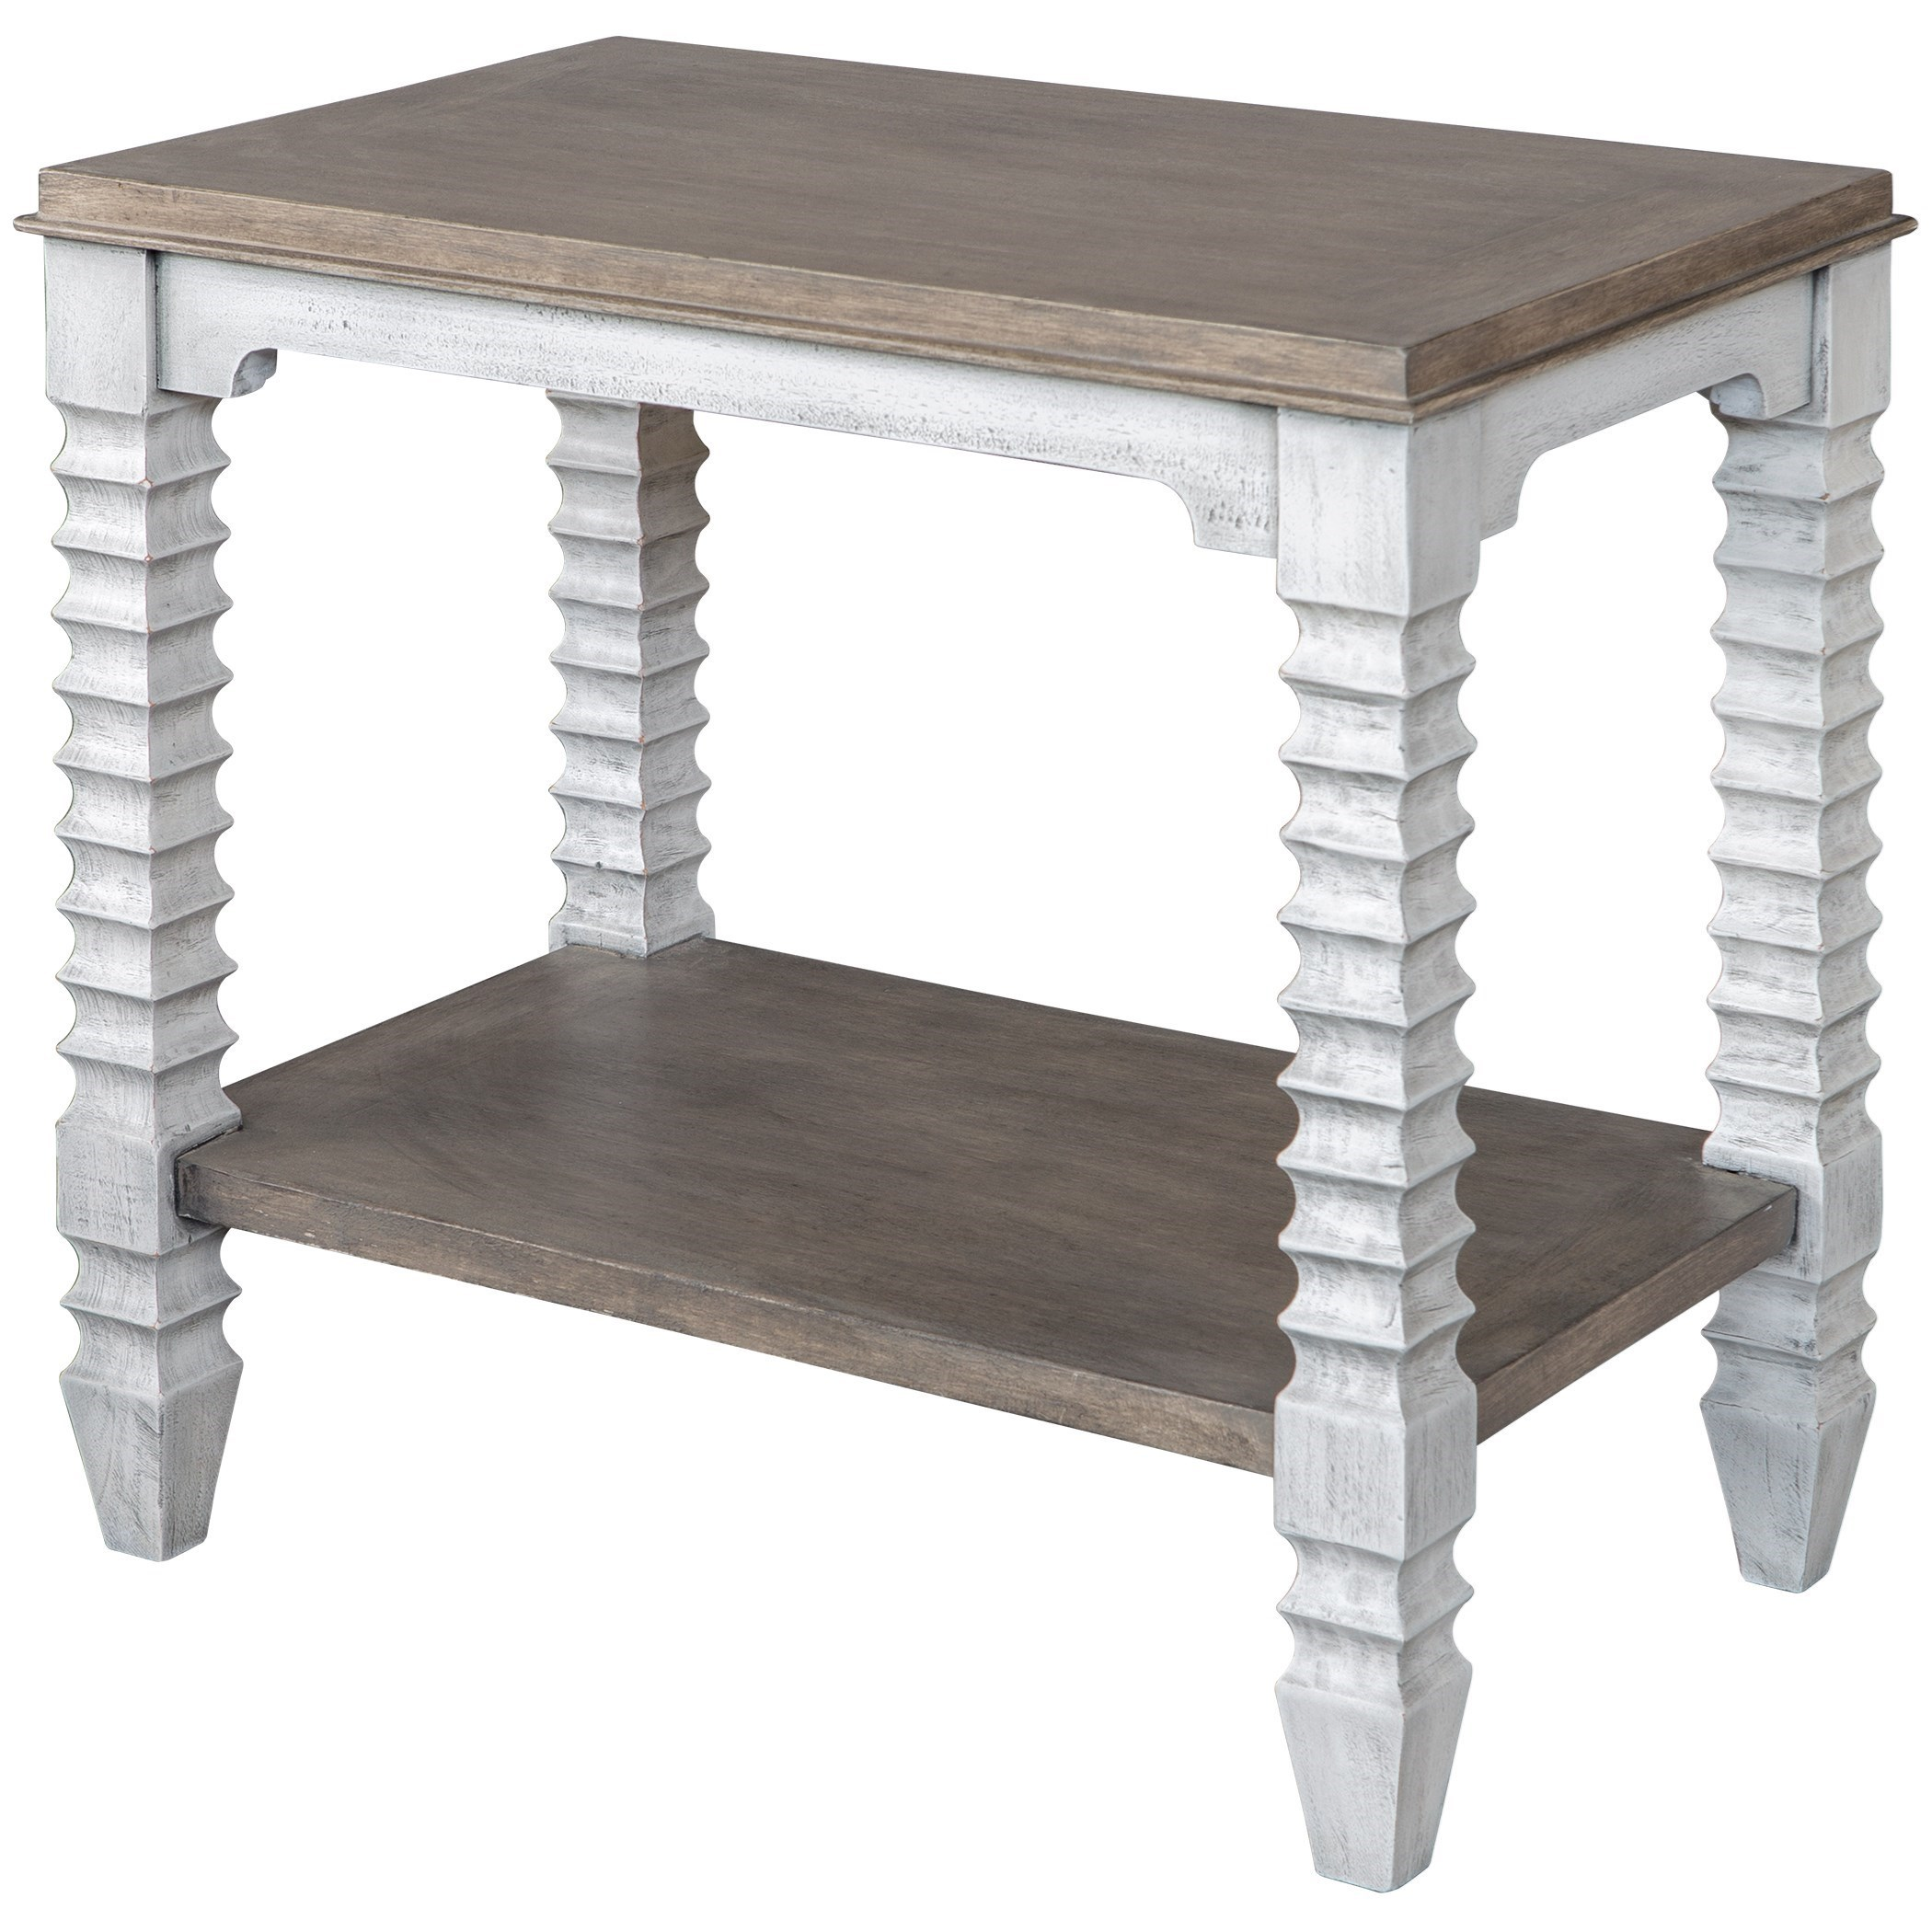 Accent Furniture - Occasional Tables Calypso Farmhouse Side Table by Uttermost at O'Dunk & O'Bright Furniture